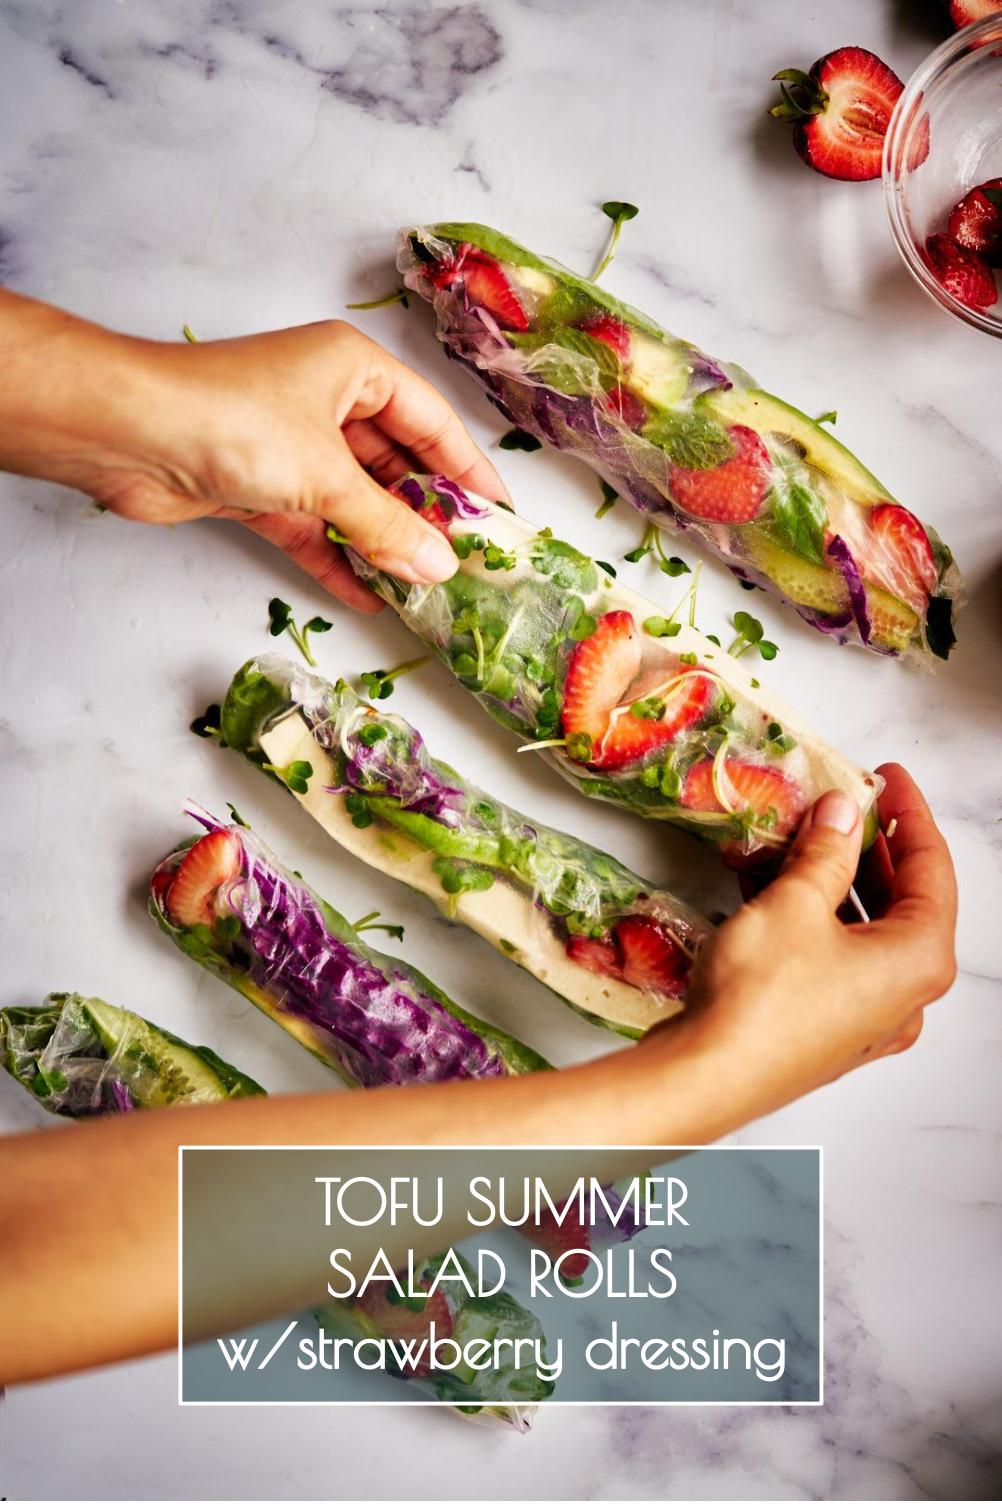 These tofu summer salad rolls with strawberry dressing will add a new level of fun to your summer salads. Plus, they\'re a great way to get everyone involved in making dinner! #strawberries #strawberry #summerrolls #saladrolls #salad #summersalad